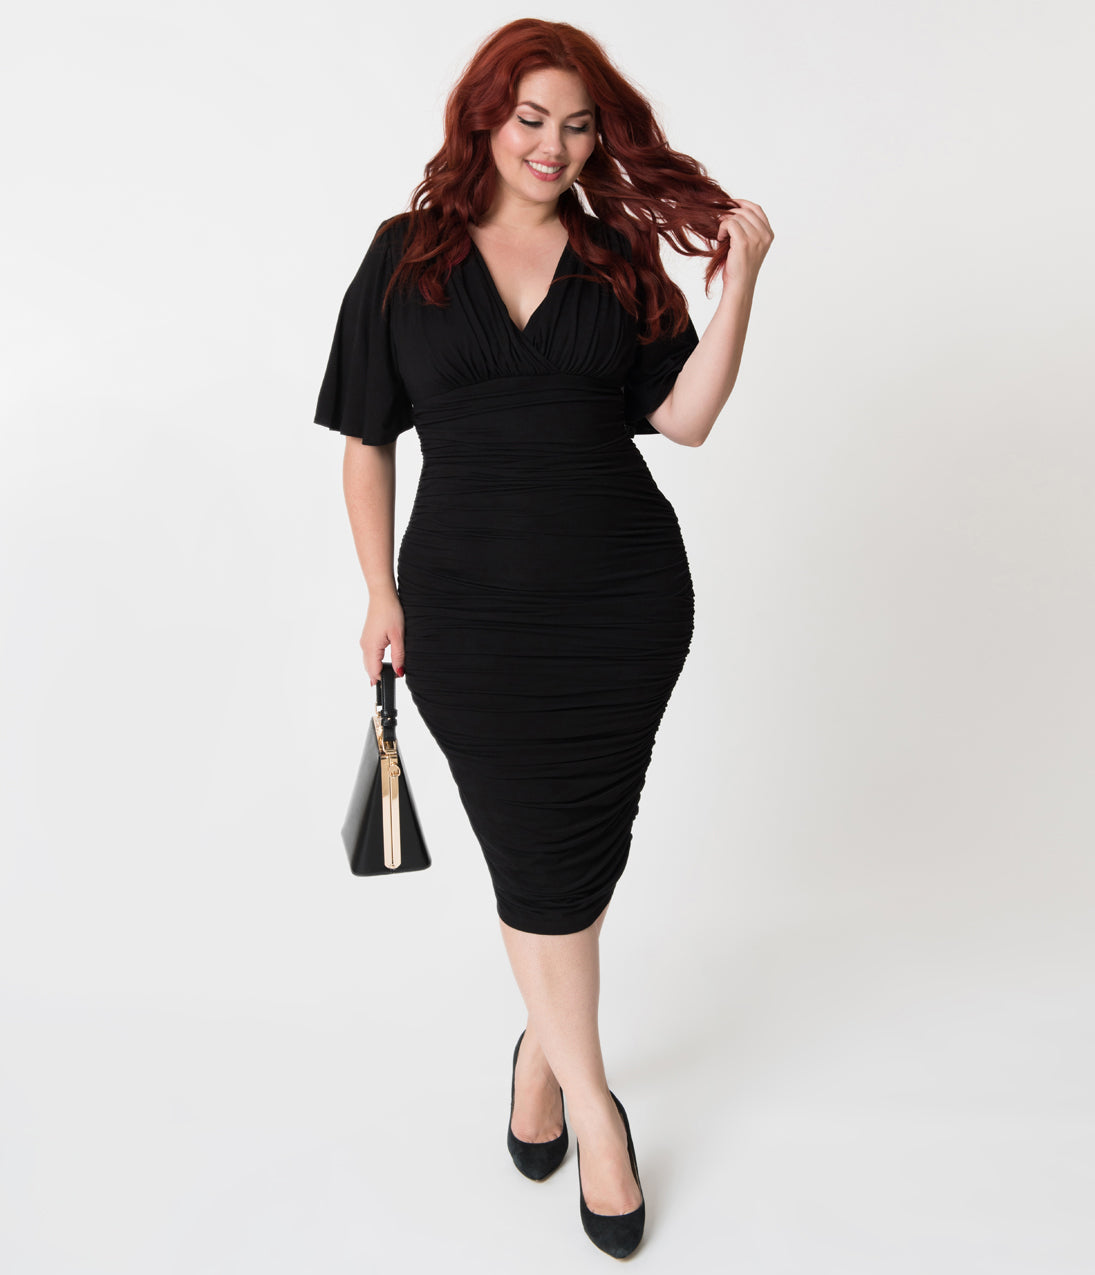 60s 70s Plus Size Dresses, Clothing, Costumes Plus Size Vintage Style Black Ruched Flutter Sleeve Rumor Wiggle Dress $108.00 AT vintagedancer.com